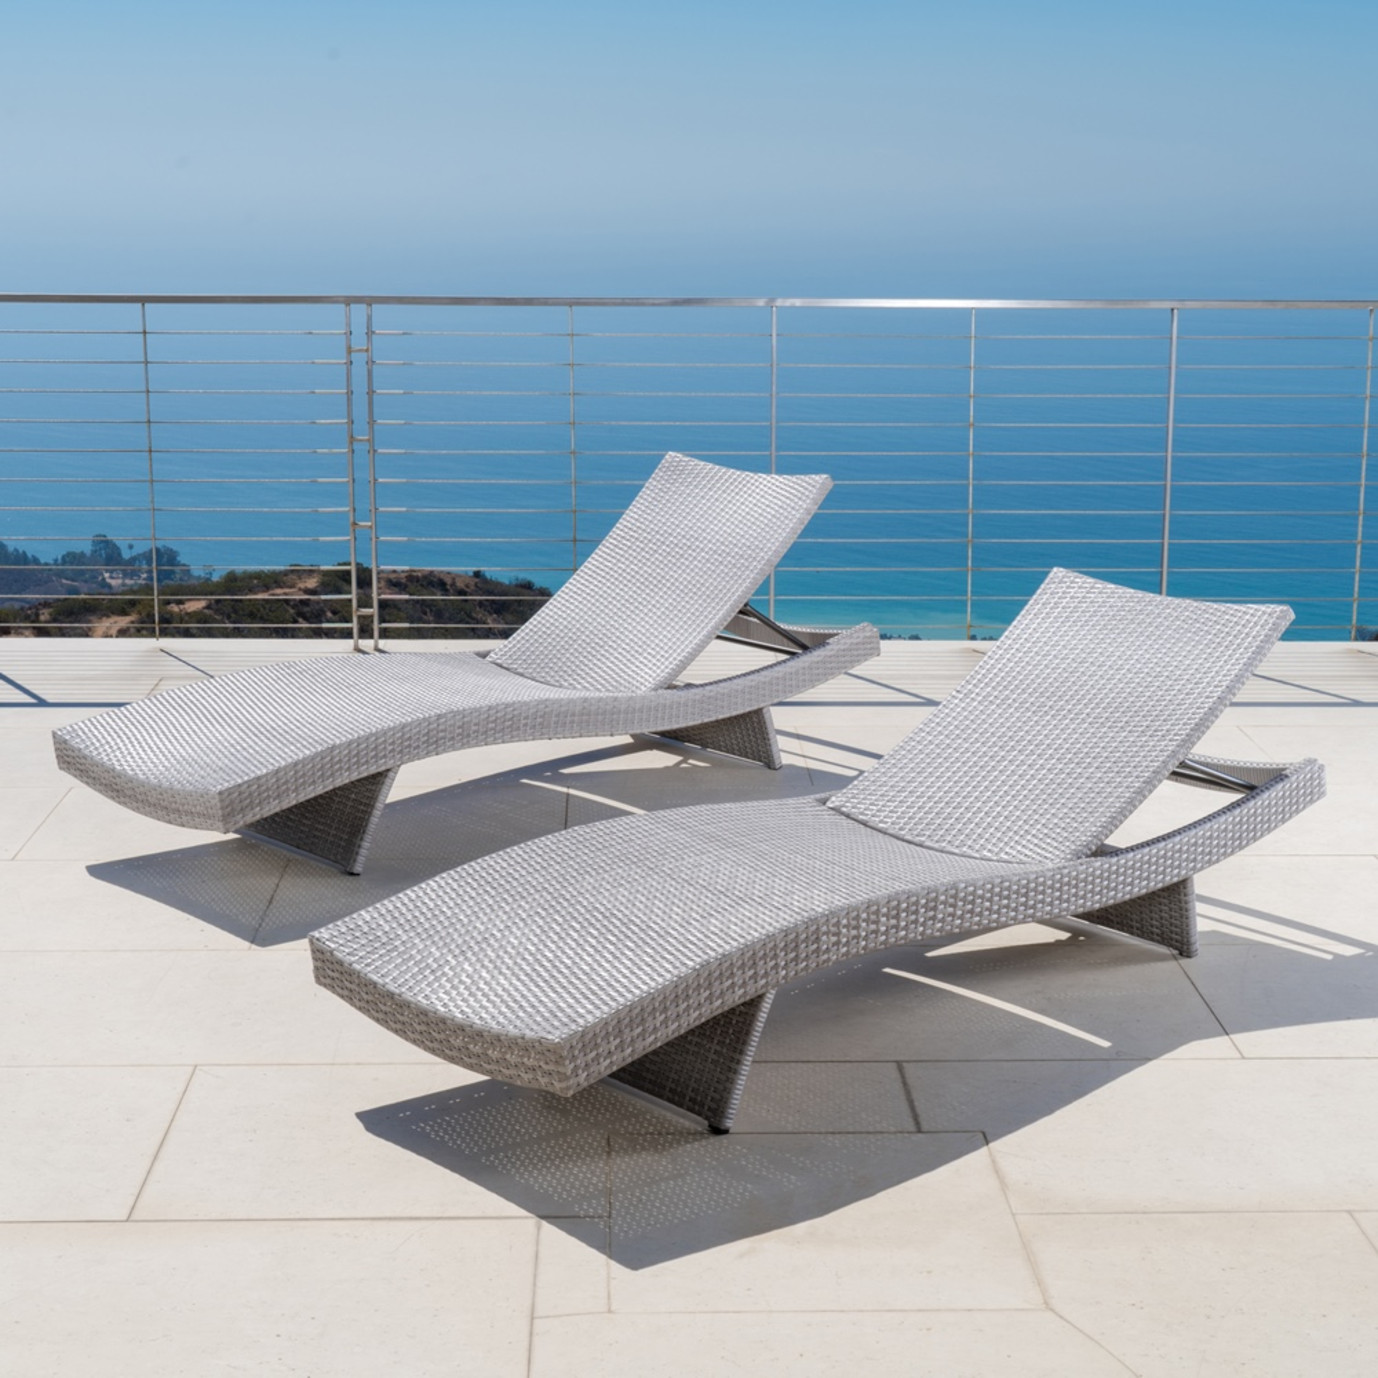 Portofino® Comfort 2 Loungers & Table - Gray